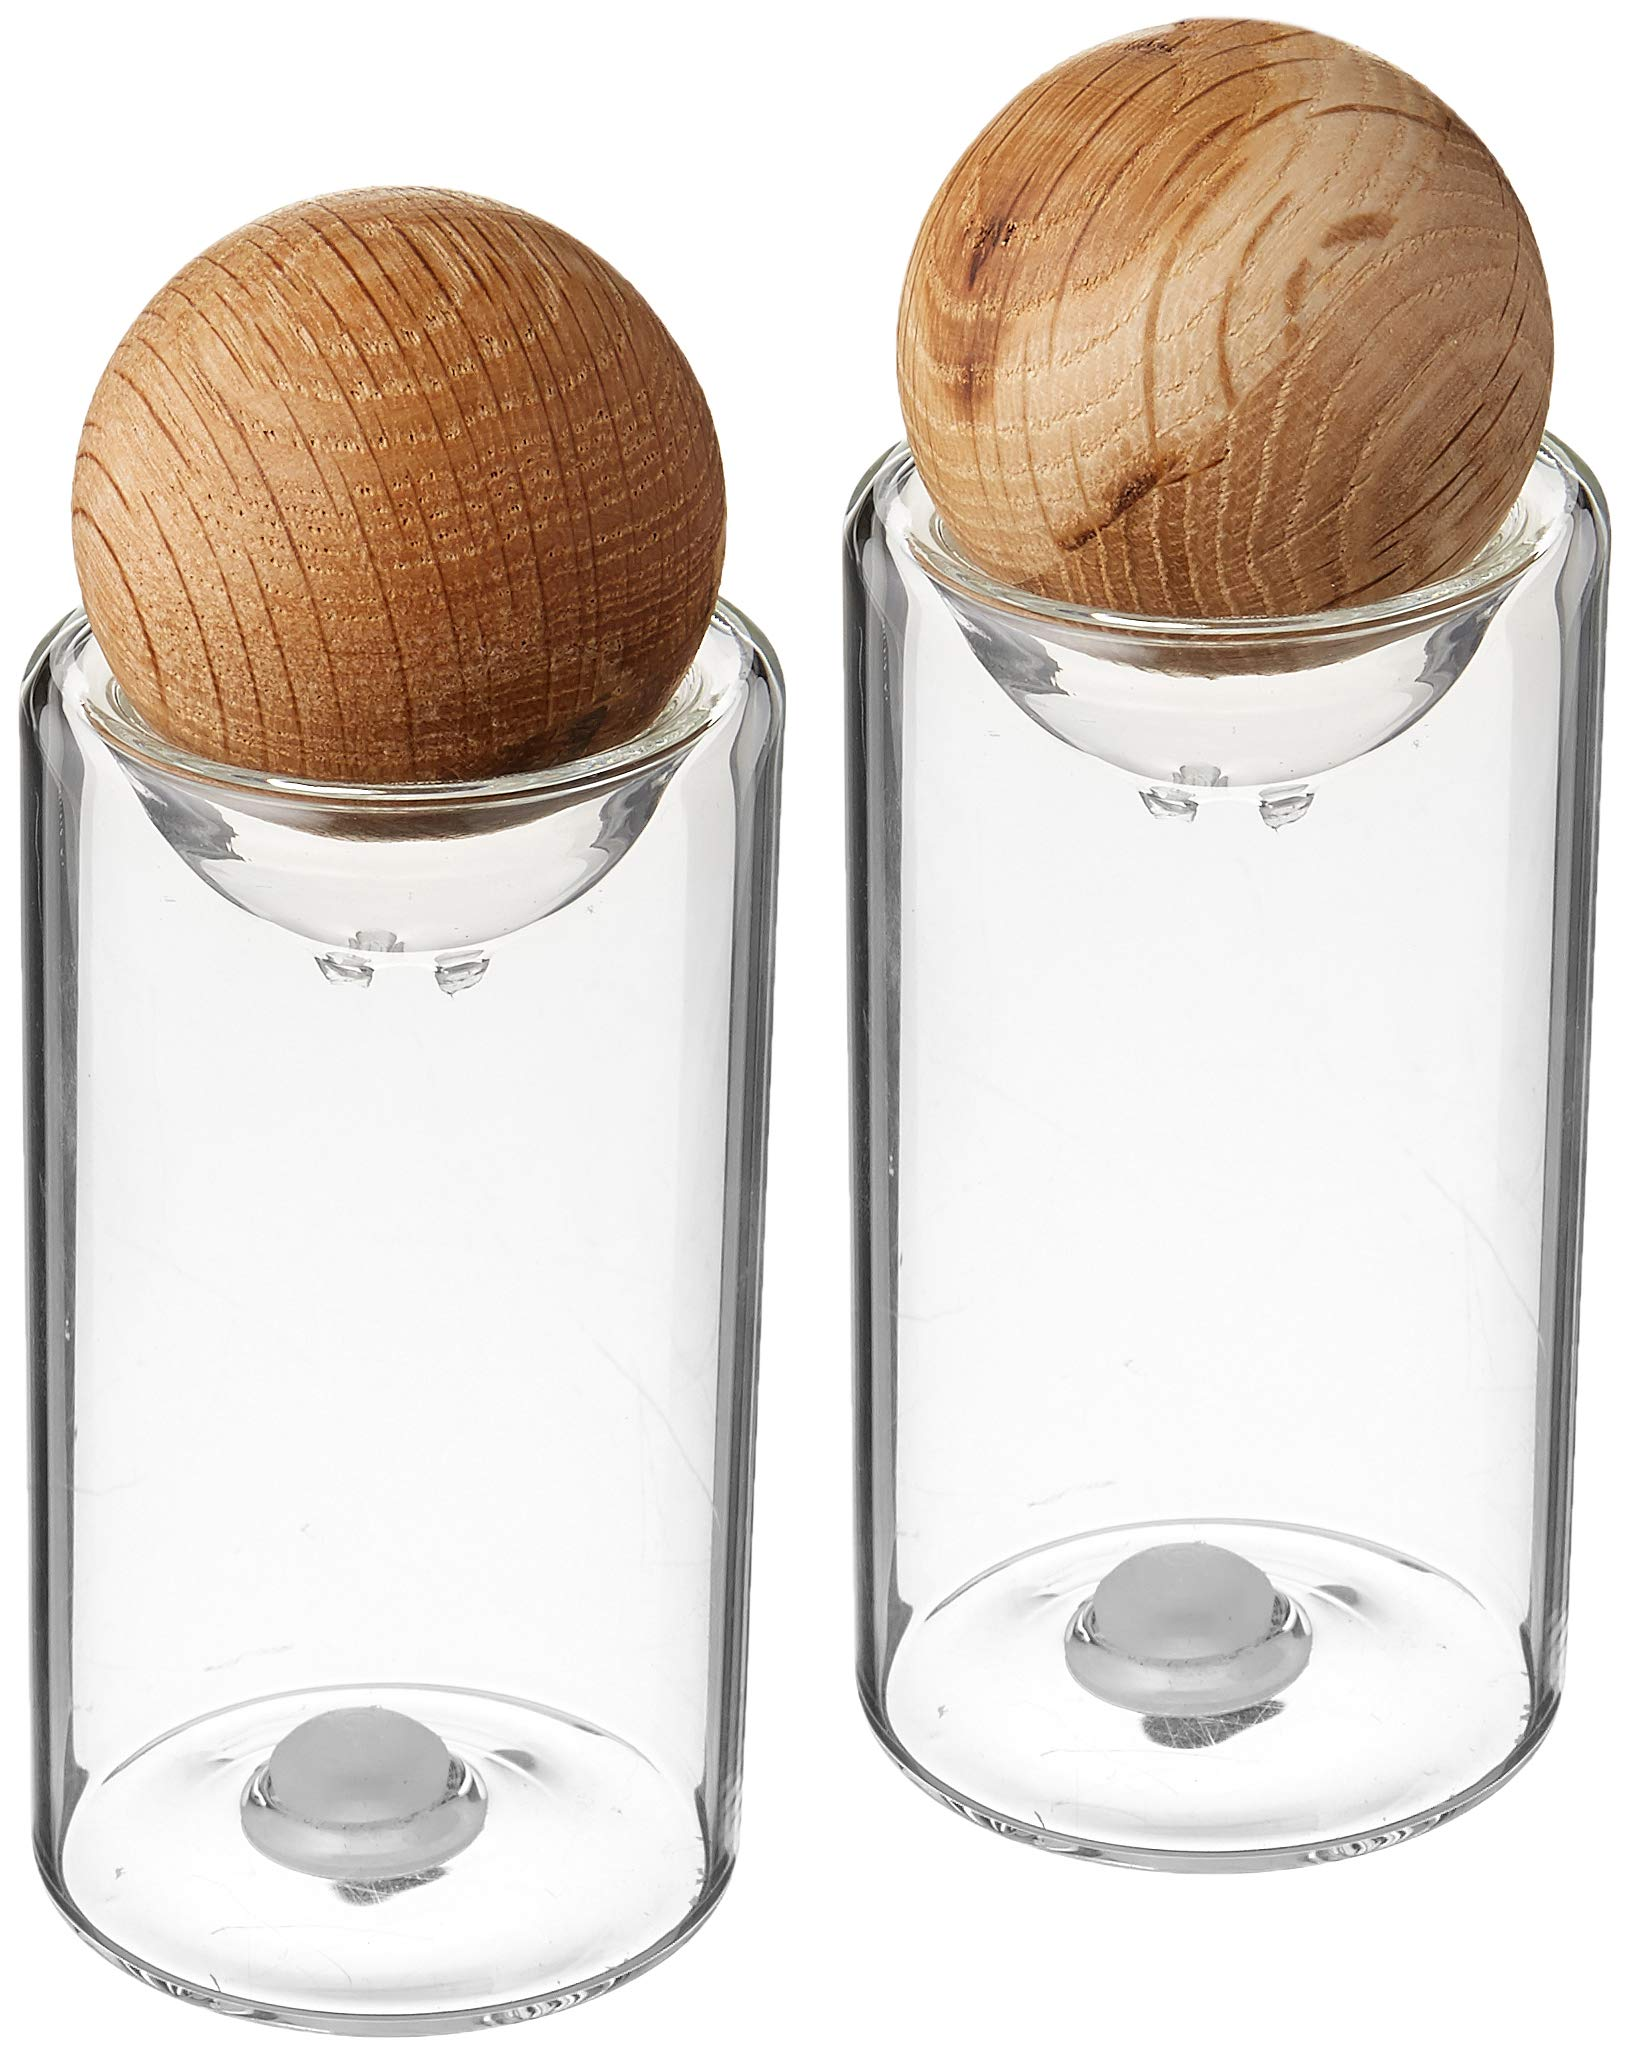 Sagaform Nature Collection Salt and Pepper Shakers Glass Oak Stopper 4 1/2-Inch, Set of 2